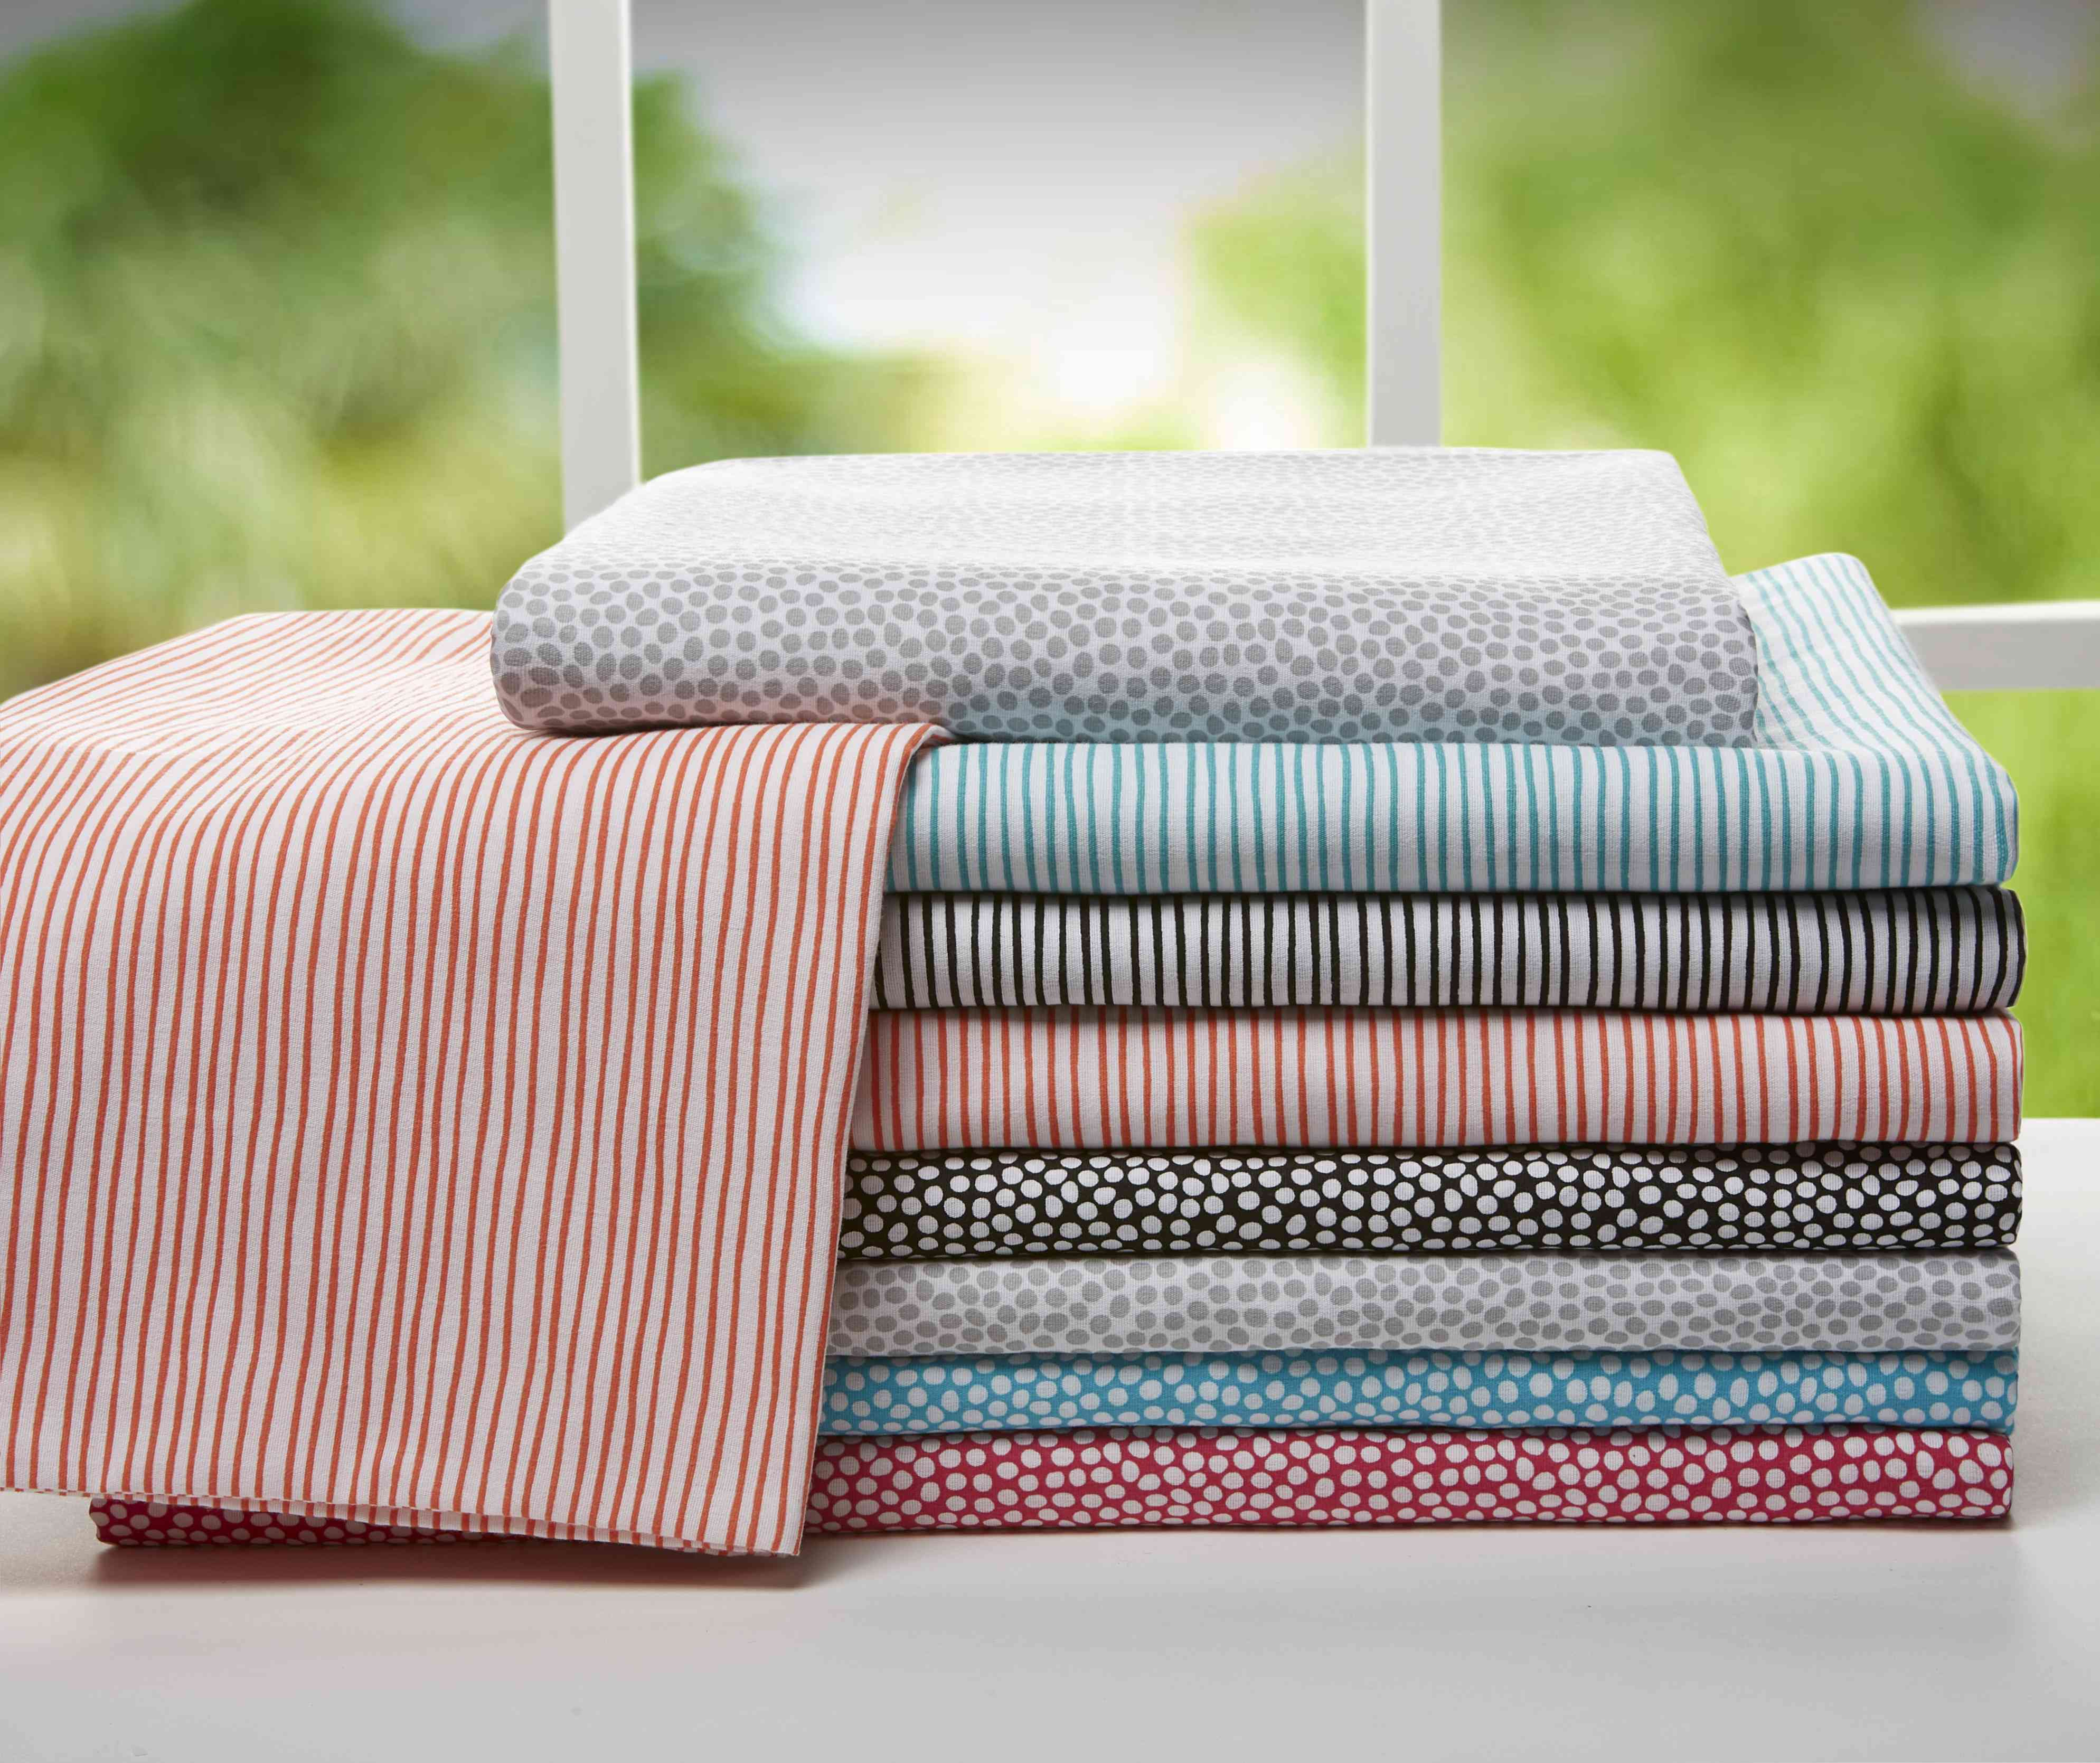 Your Zone Cotton-Blend Sheets